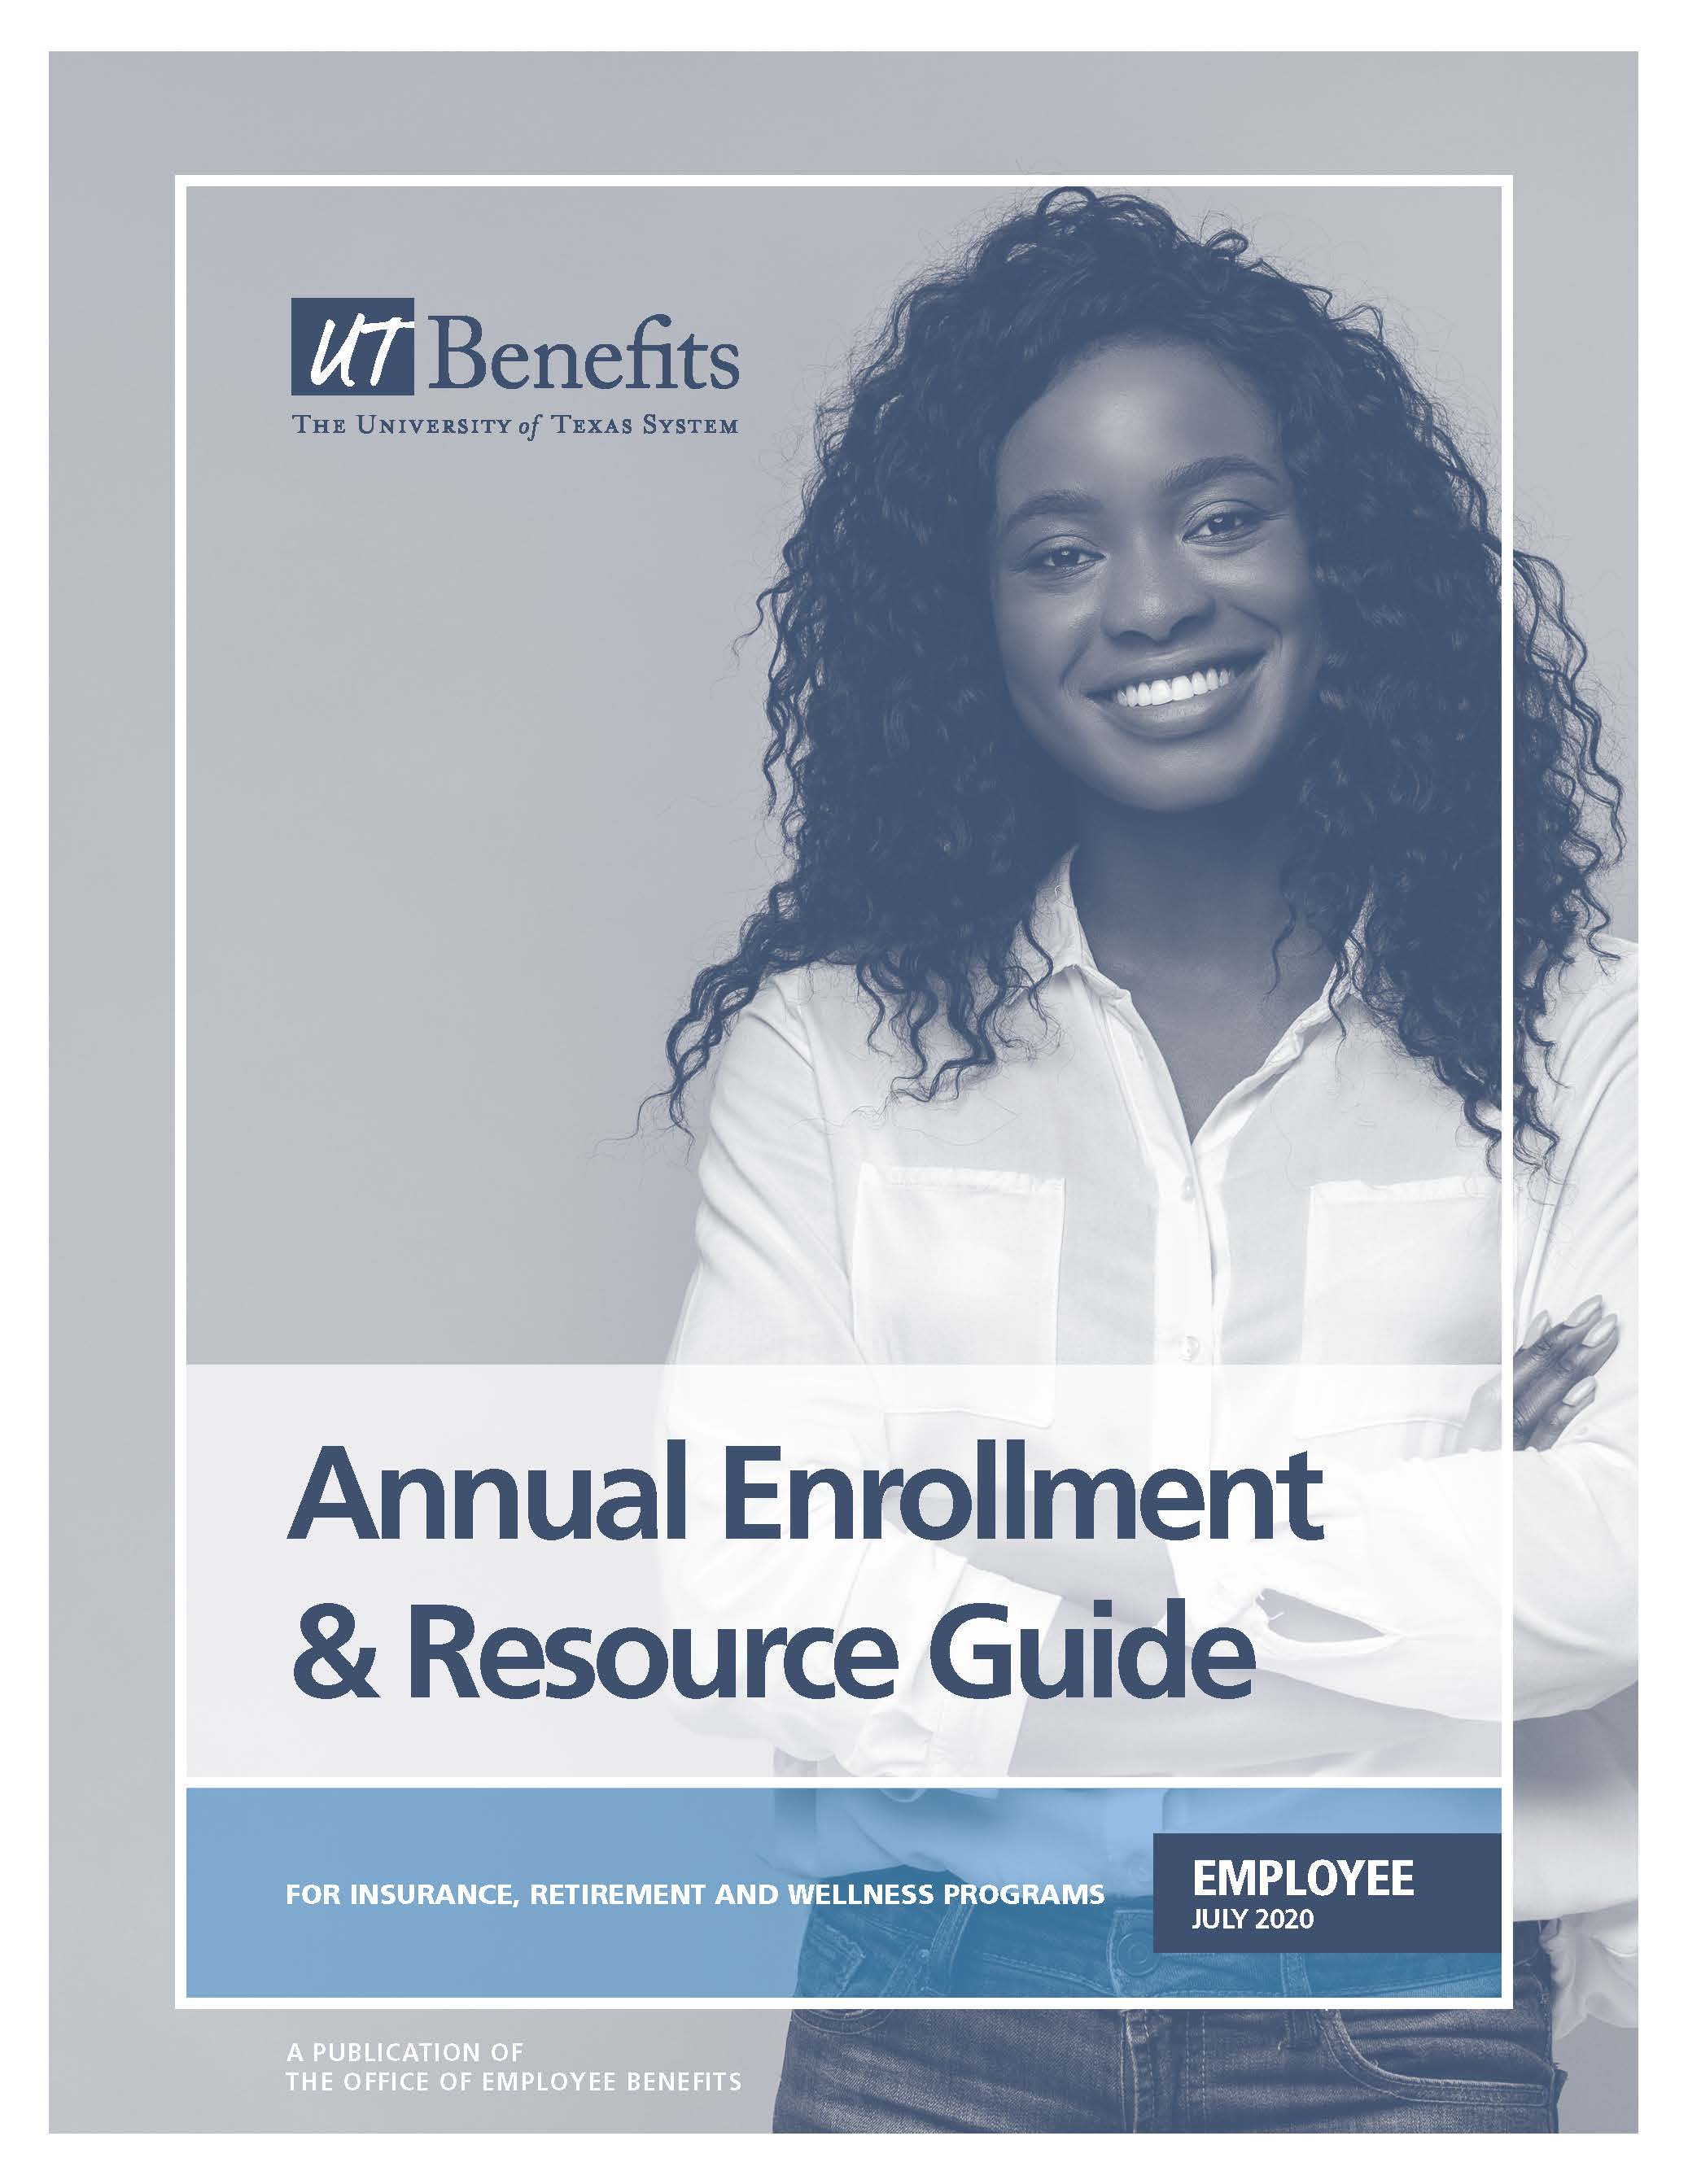 2020 AE Resource Guide for Employees cover